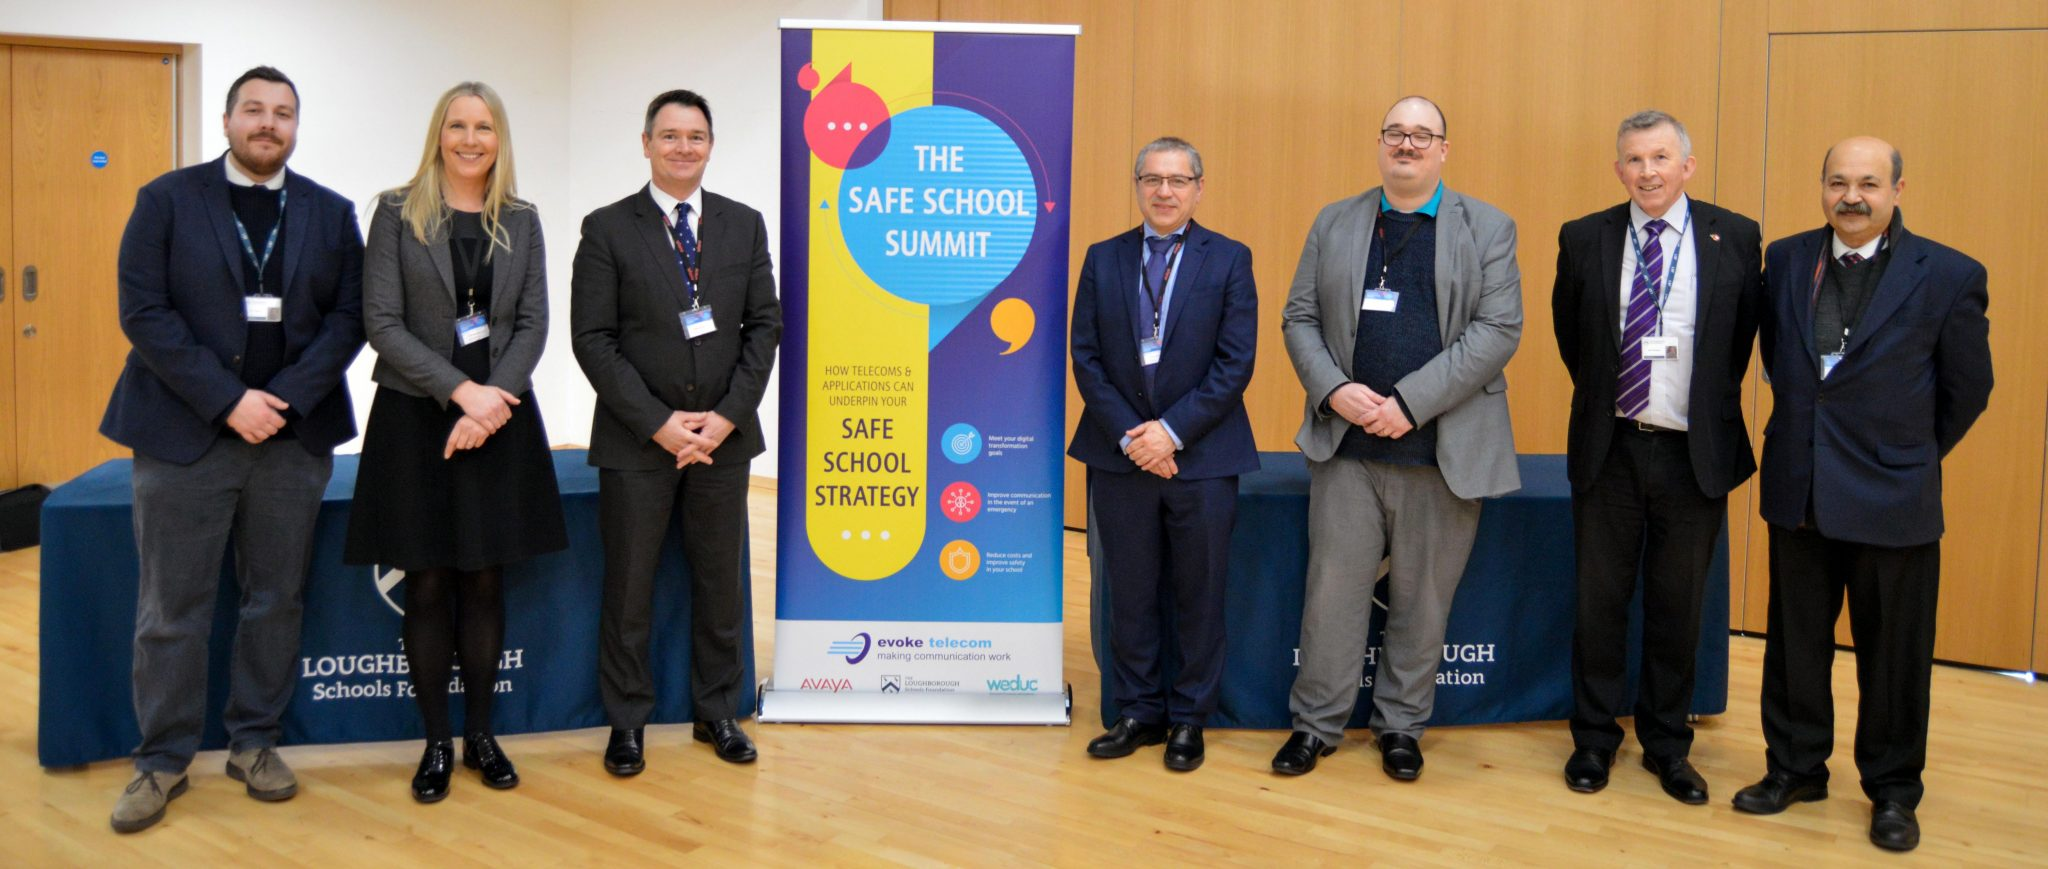 The Safe School Summit